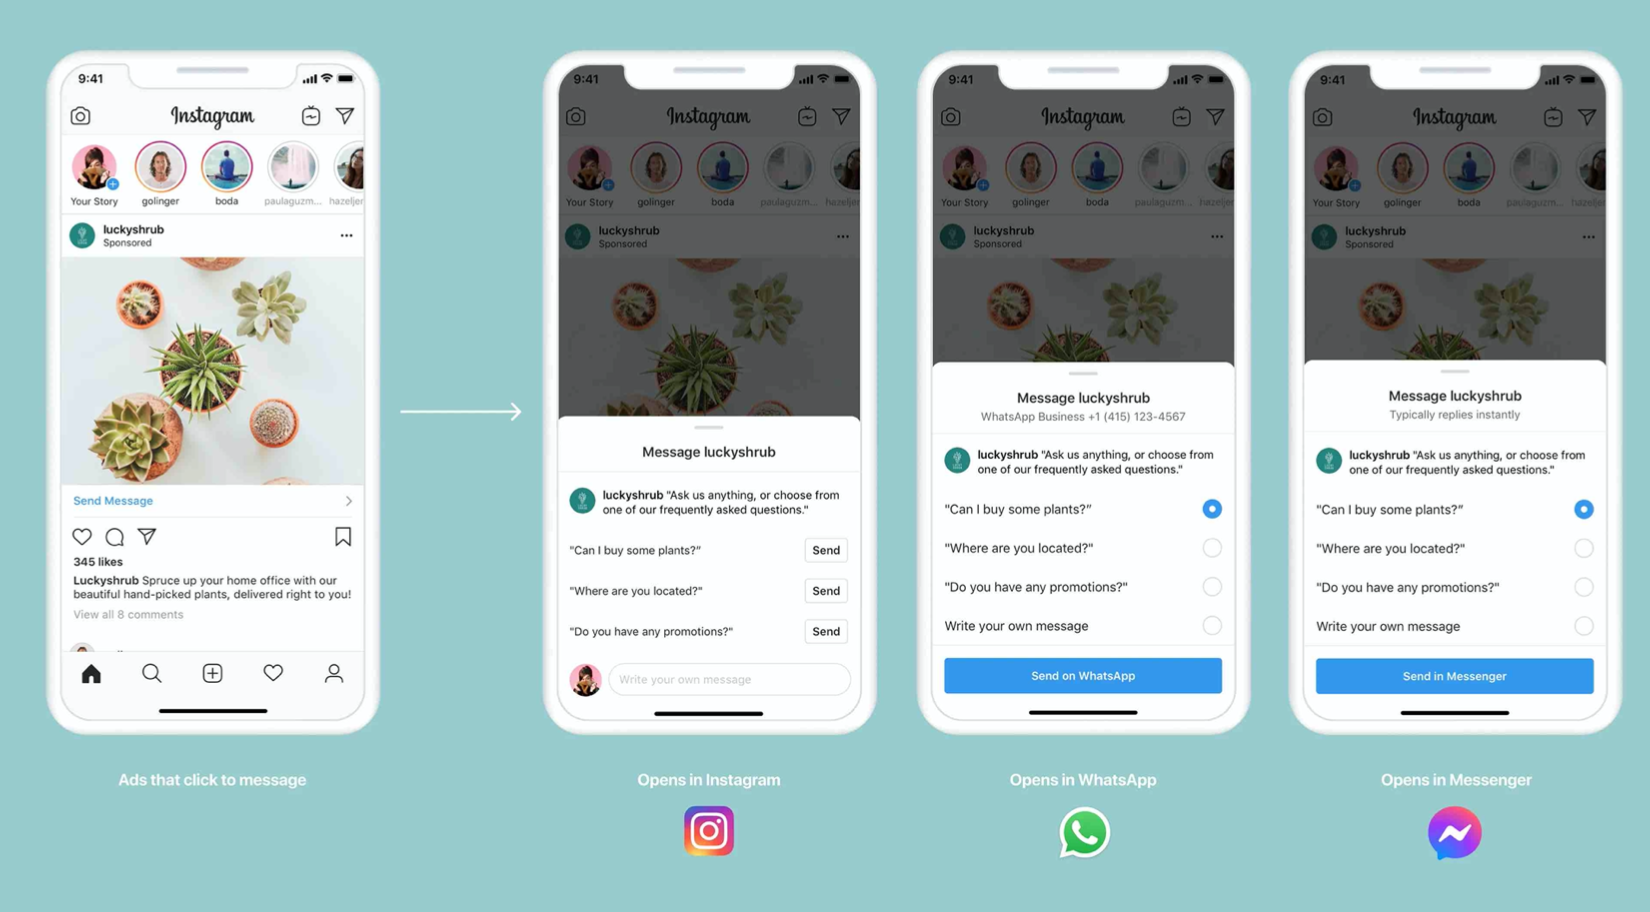 Facebook update to Messenger Ads allowing for multiple chat locations